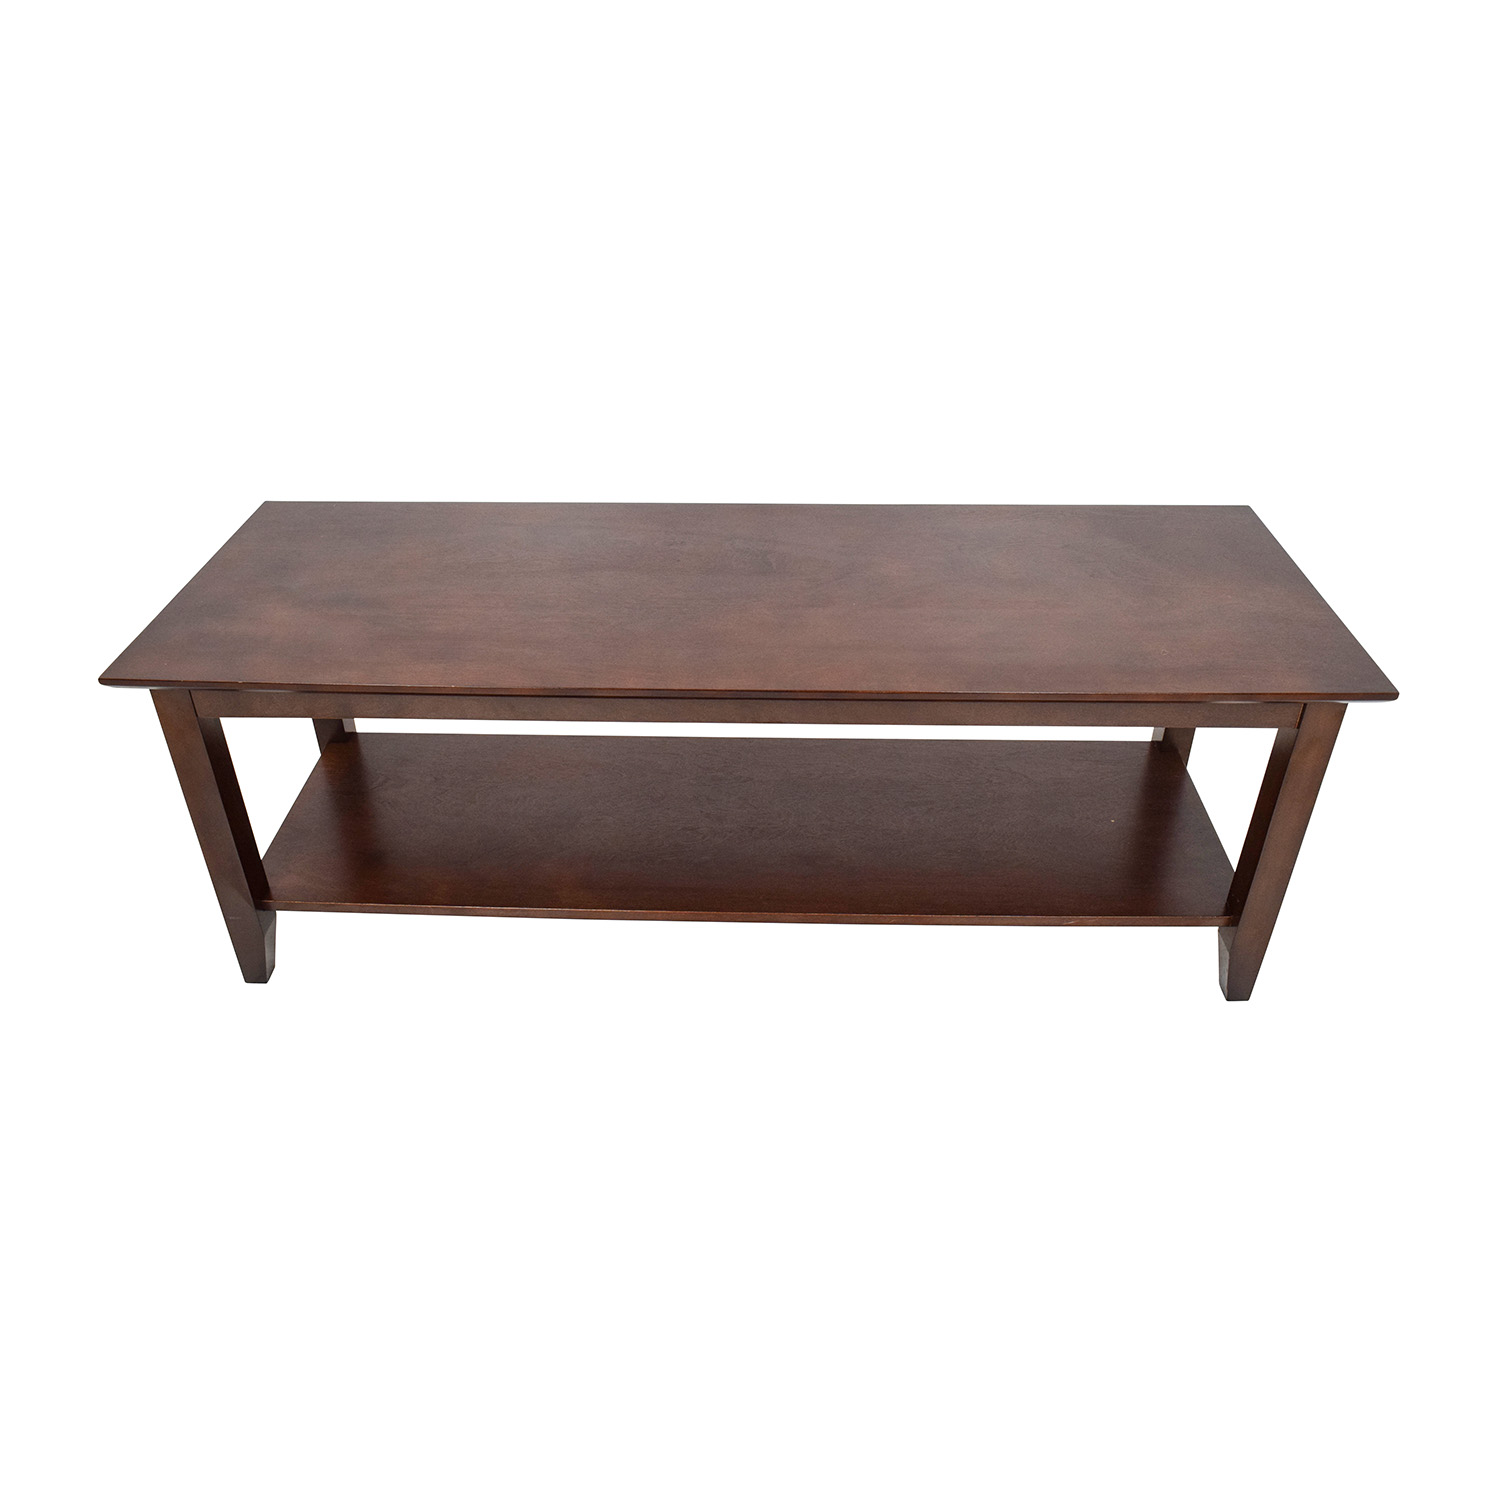 OFF Crate and Barrel Crate & Barrel Glass Coffee Table Tables